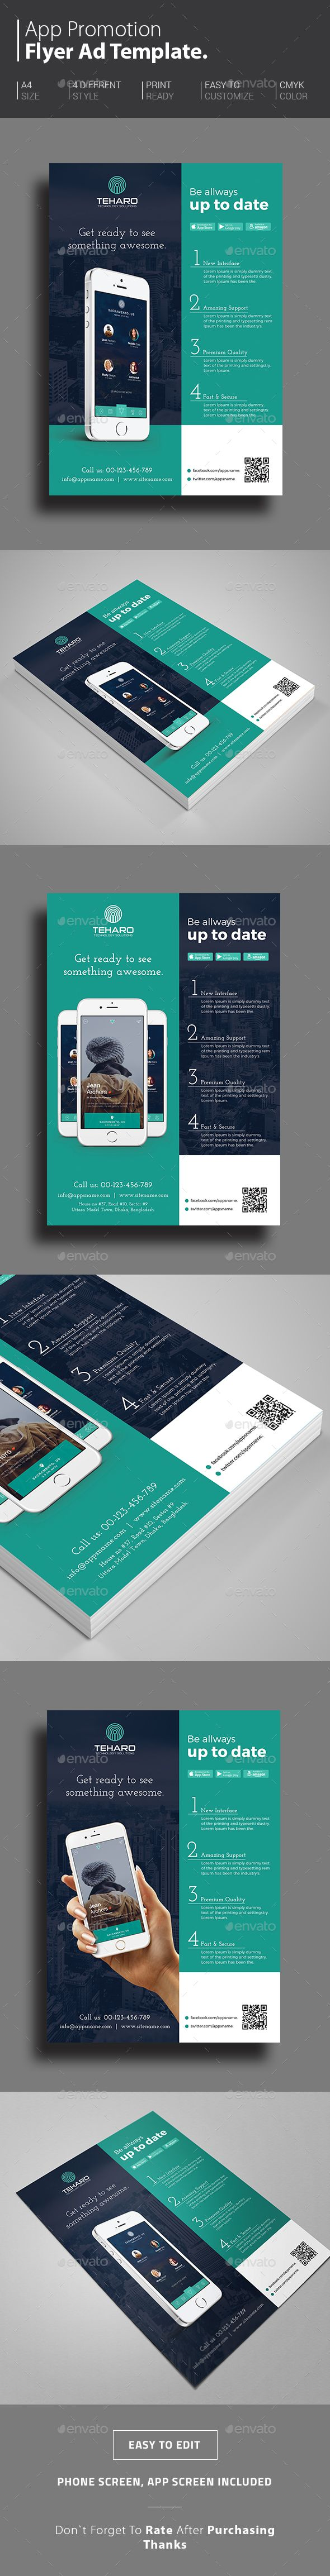 app to make a flyer